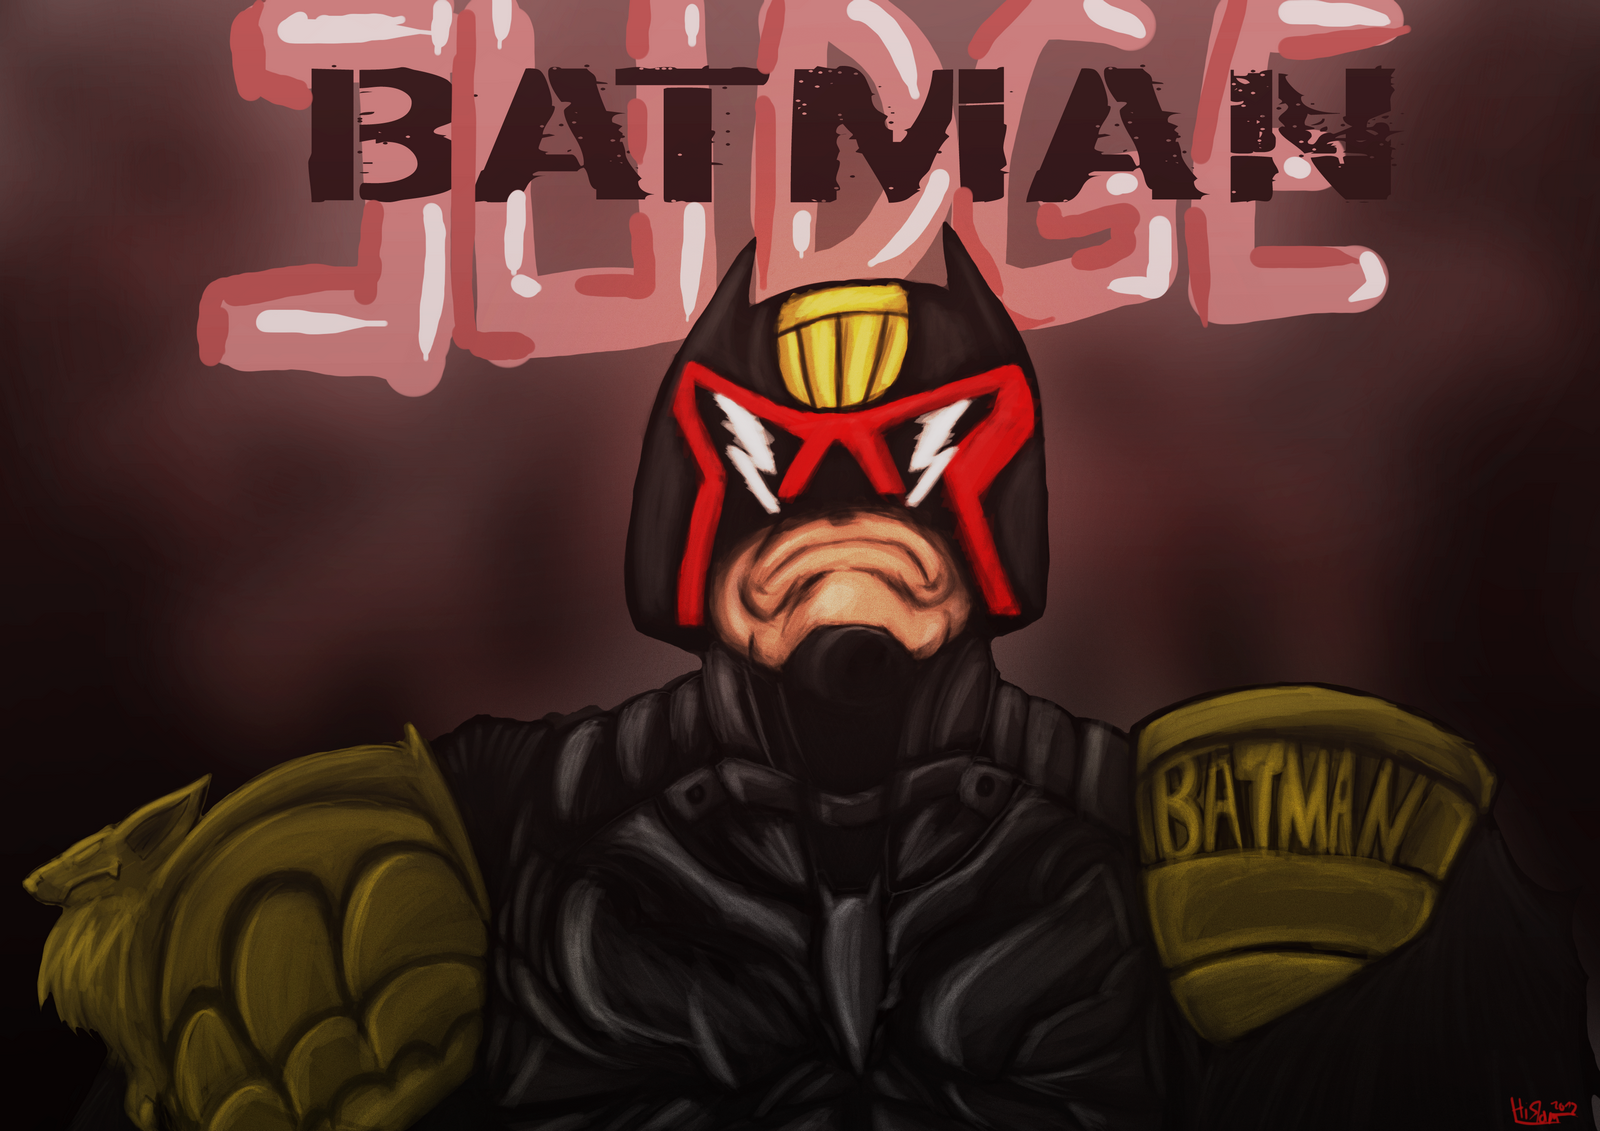 Judge Batman